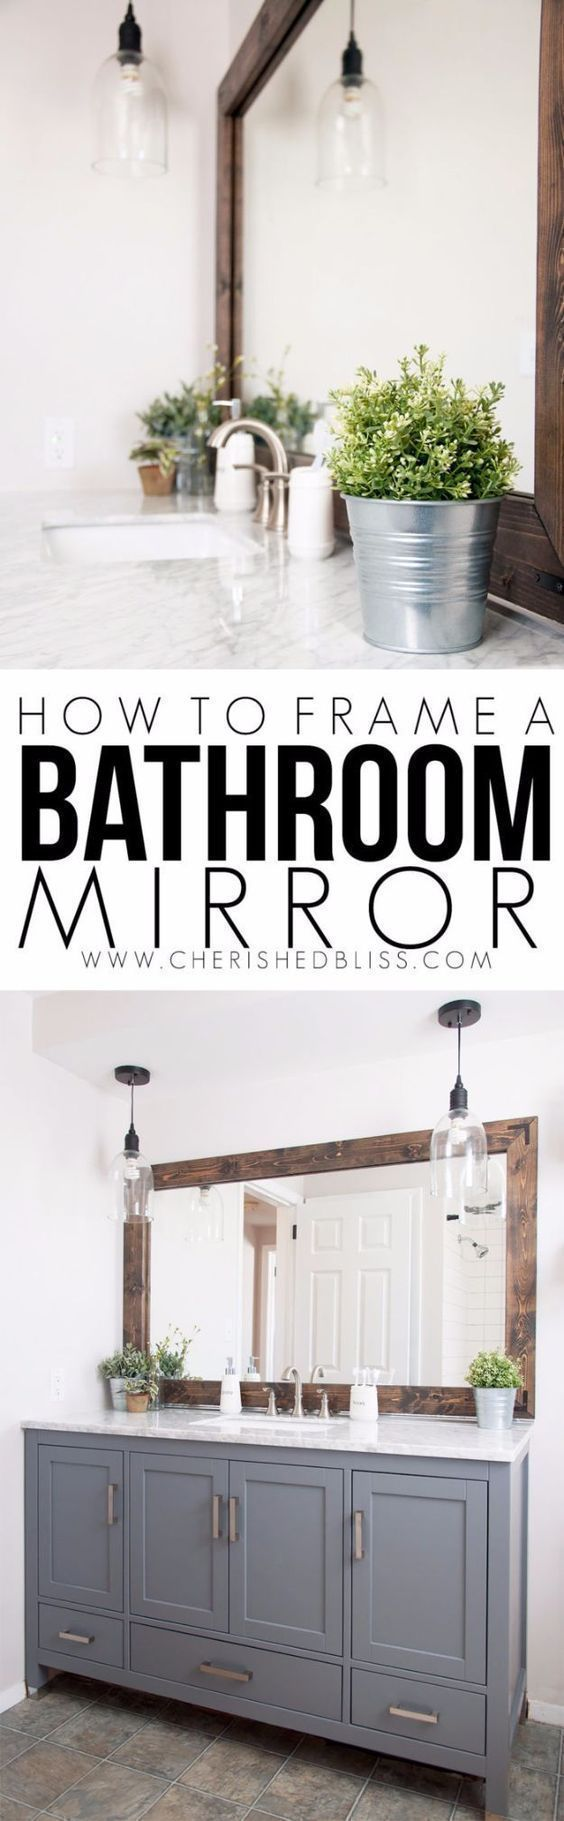 DIY Remodeling Hacks - Frame a Bathroom Mirror - Quick and Easy Home Repair Tips and Tricks - Cool Hacks for DIY Home Improvement Ideas - Cheap Ways To Fix Bathroom, Bedroom, Kitchen, Outdoor, Living Room and Lighting - Creative Renovation on A Budget - D #kitchenrenovations #homeremodelingdiy #livingroomideasonabudget